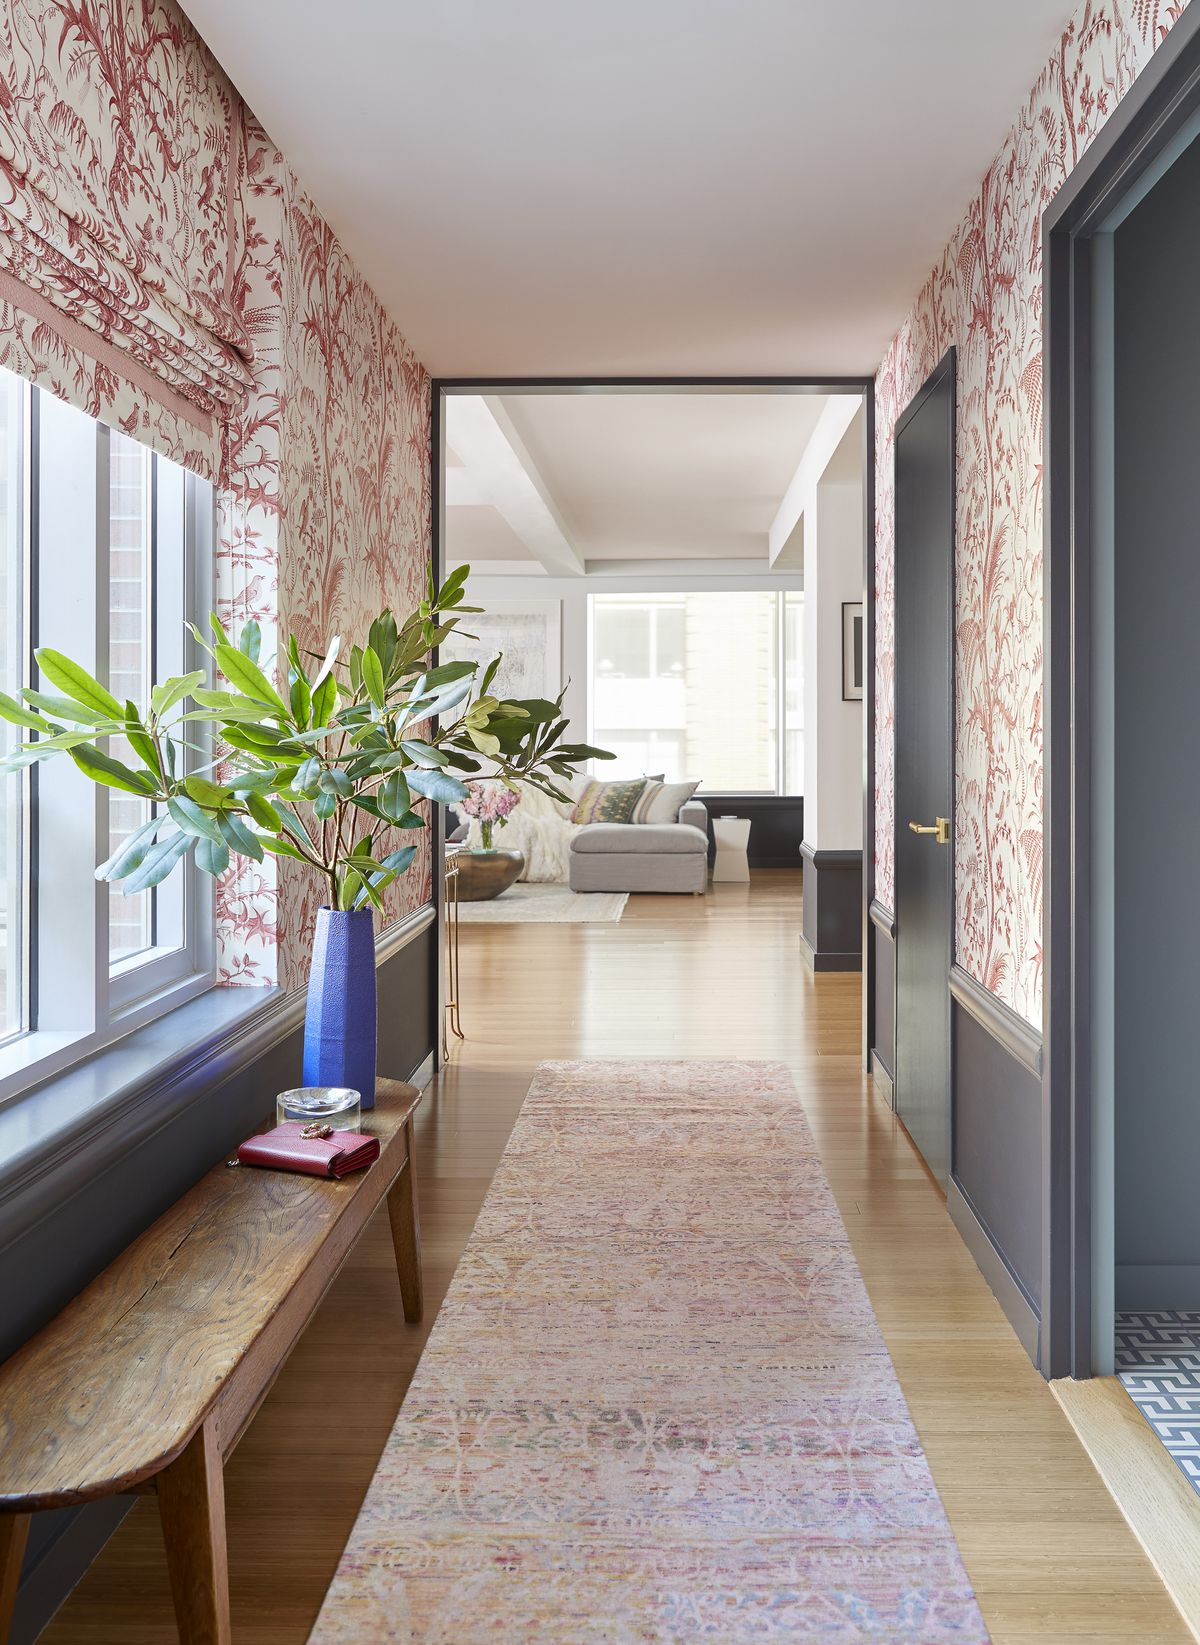 Youtube Star Casey Neistat Shows Off His Muted Manhattan Apartment Curbed Ny